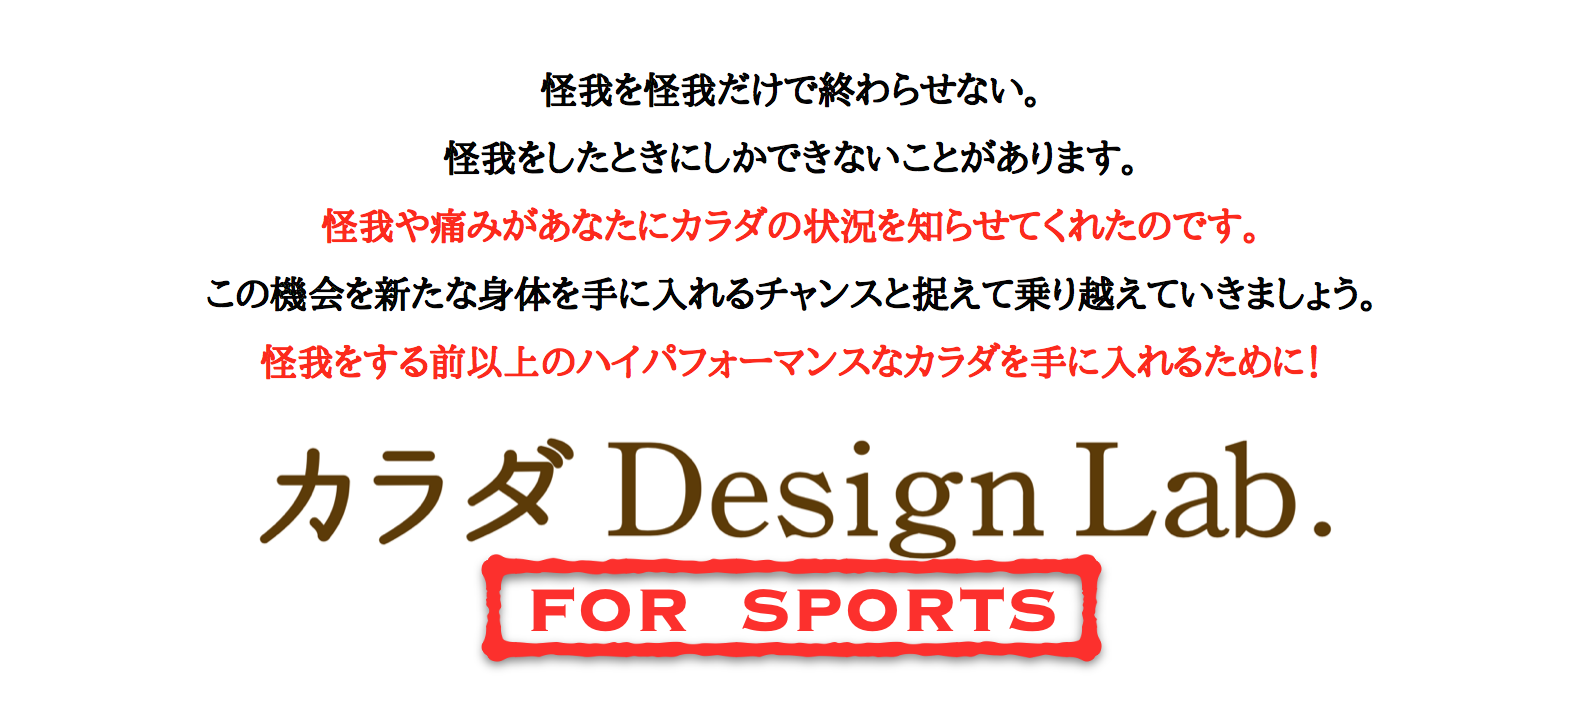 カラダ Design Lab. for sports